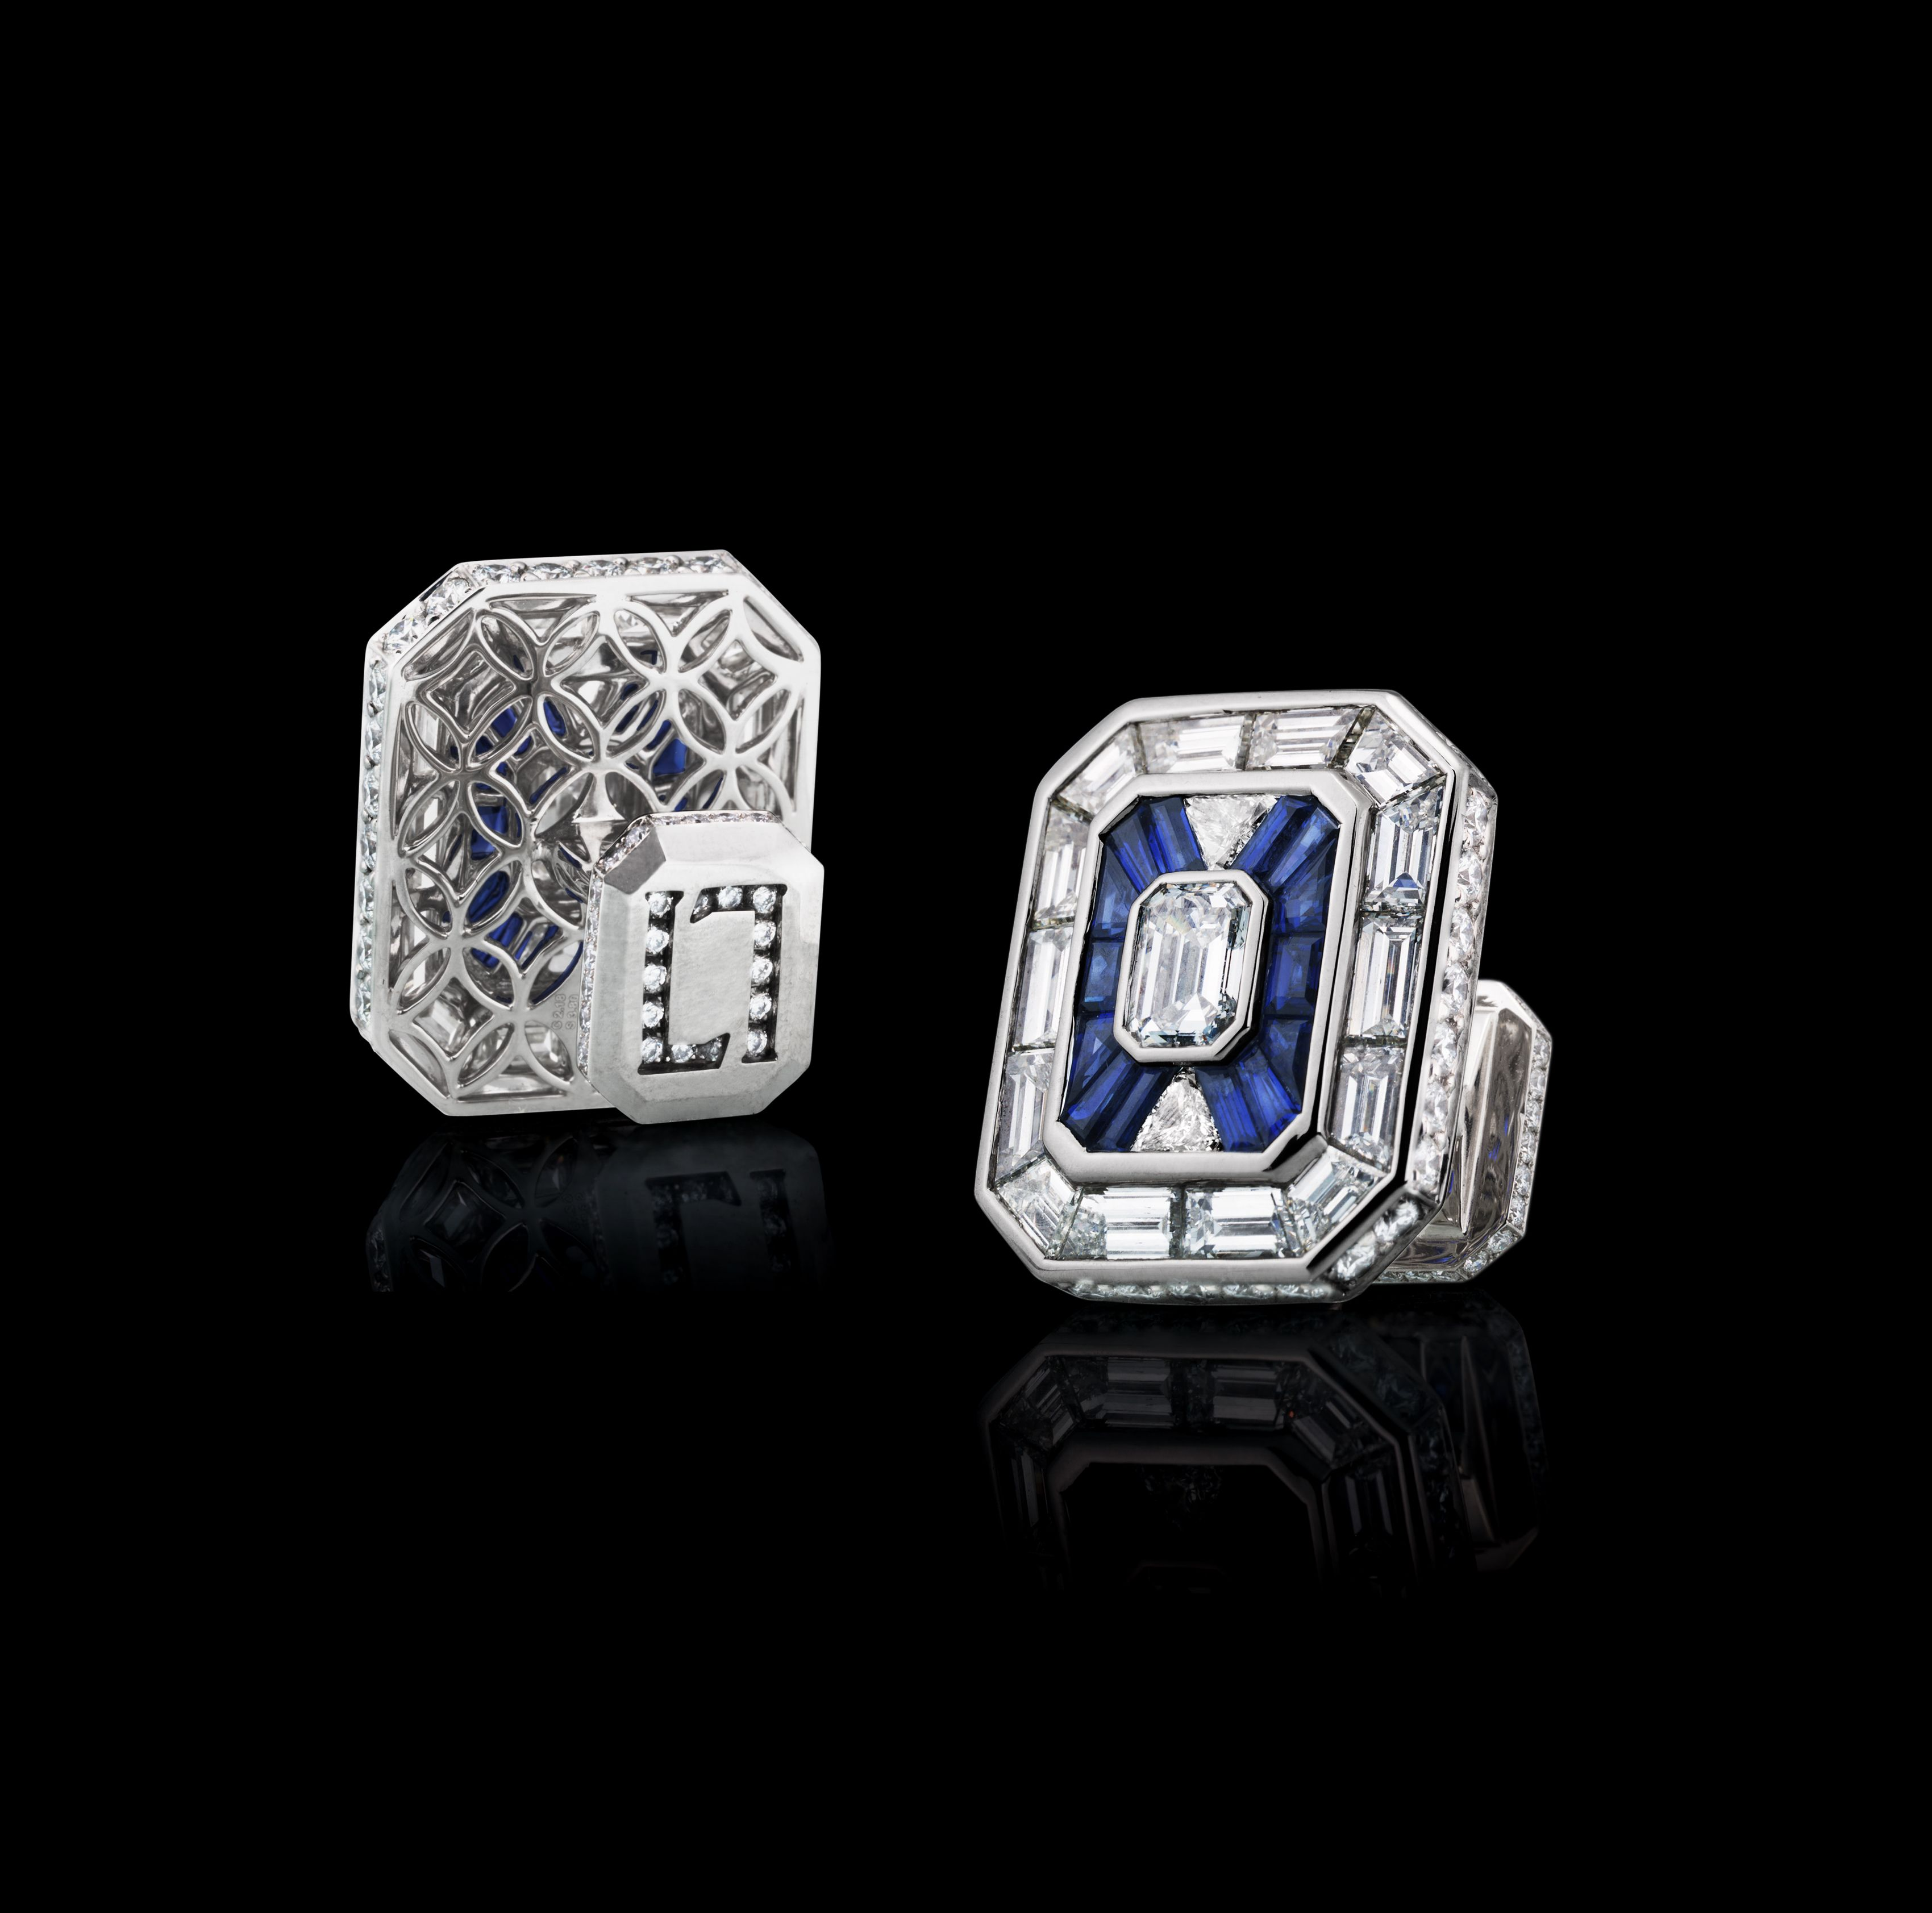 LEVIEV Sapphire and Diamond Cuff Links totaling 8.82 carats, handcrafted in platinum.